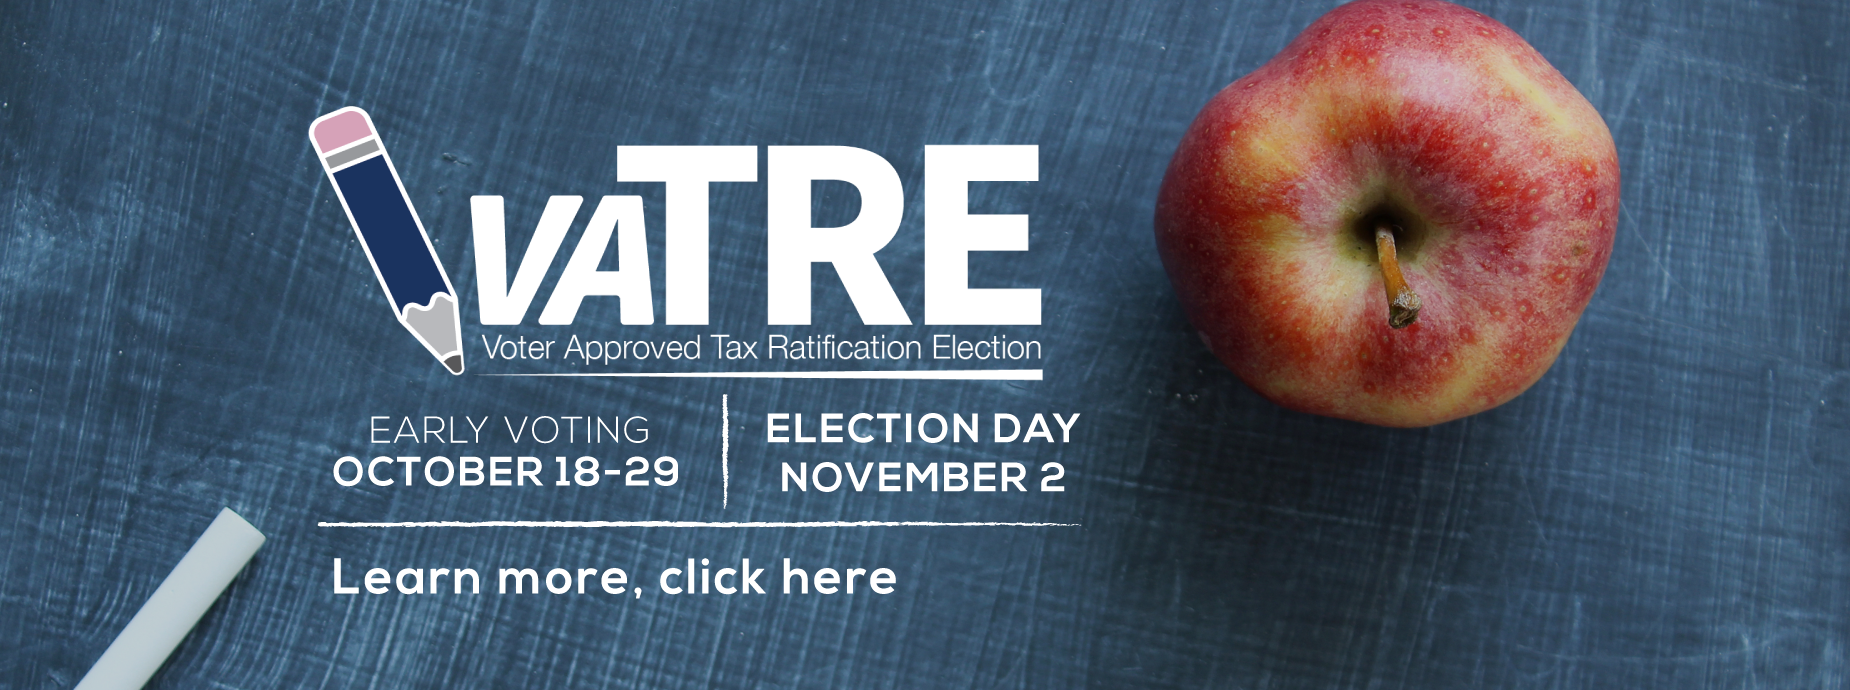 VATRE banner -Early Voting Oct. 21-29, Election Nov. 2